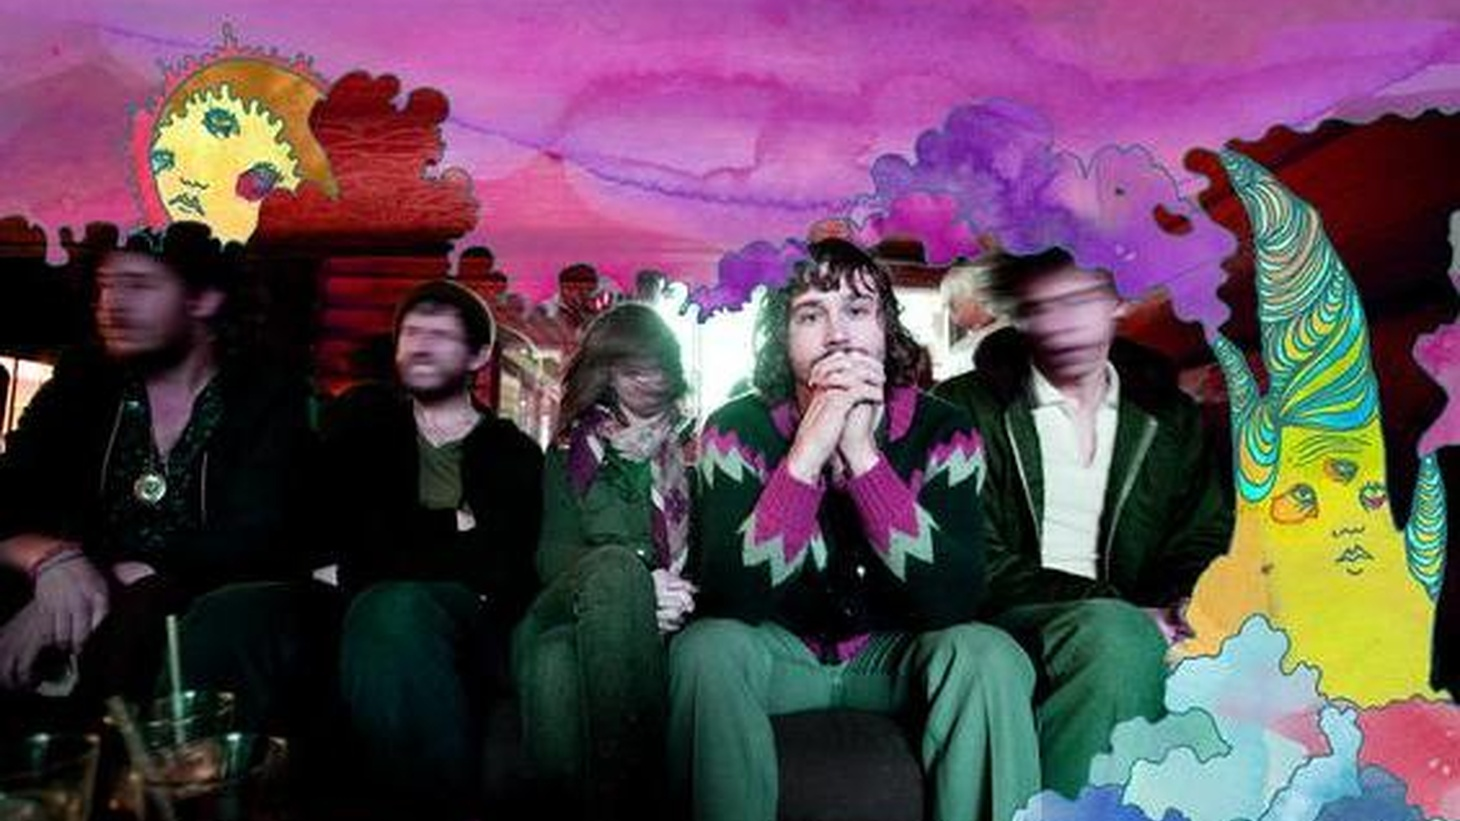 Portugal. The Man are a prolific band of Alaskans whose latest CD caught our eye with awe-inspiring album art and then kept our attention with rousing sing-a-longs. They are known to be a phenomenal live band and we'll get to hear it when they perform on Morning Becomes Eclectic at 11:15am.